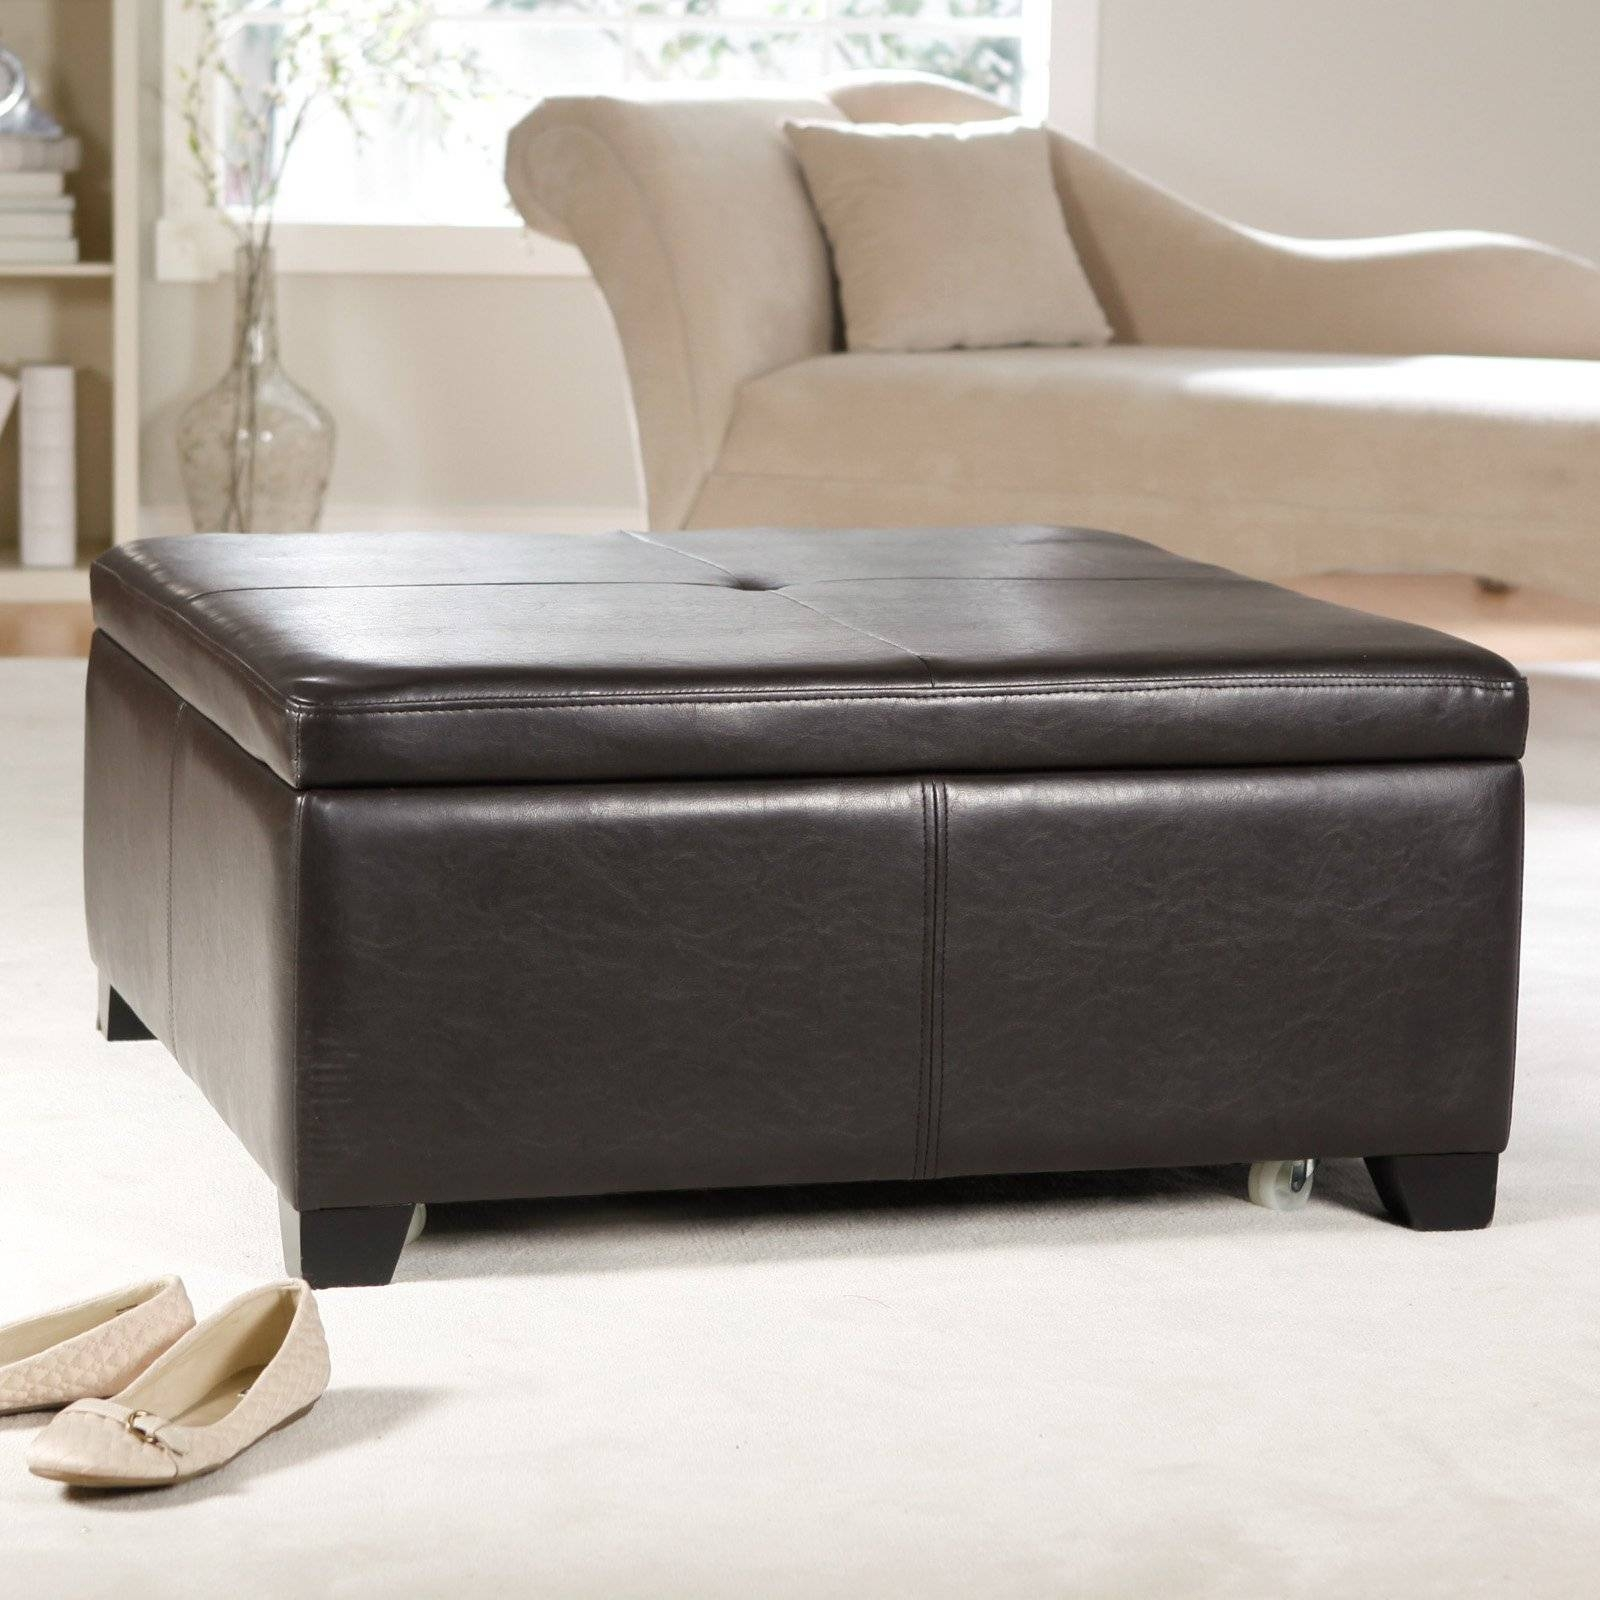 Square Coffee Tables With Storage | Coffeetablesmartin with Square Coffee Tables With Storages (Image 27 of 30)